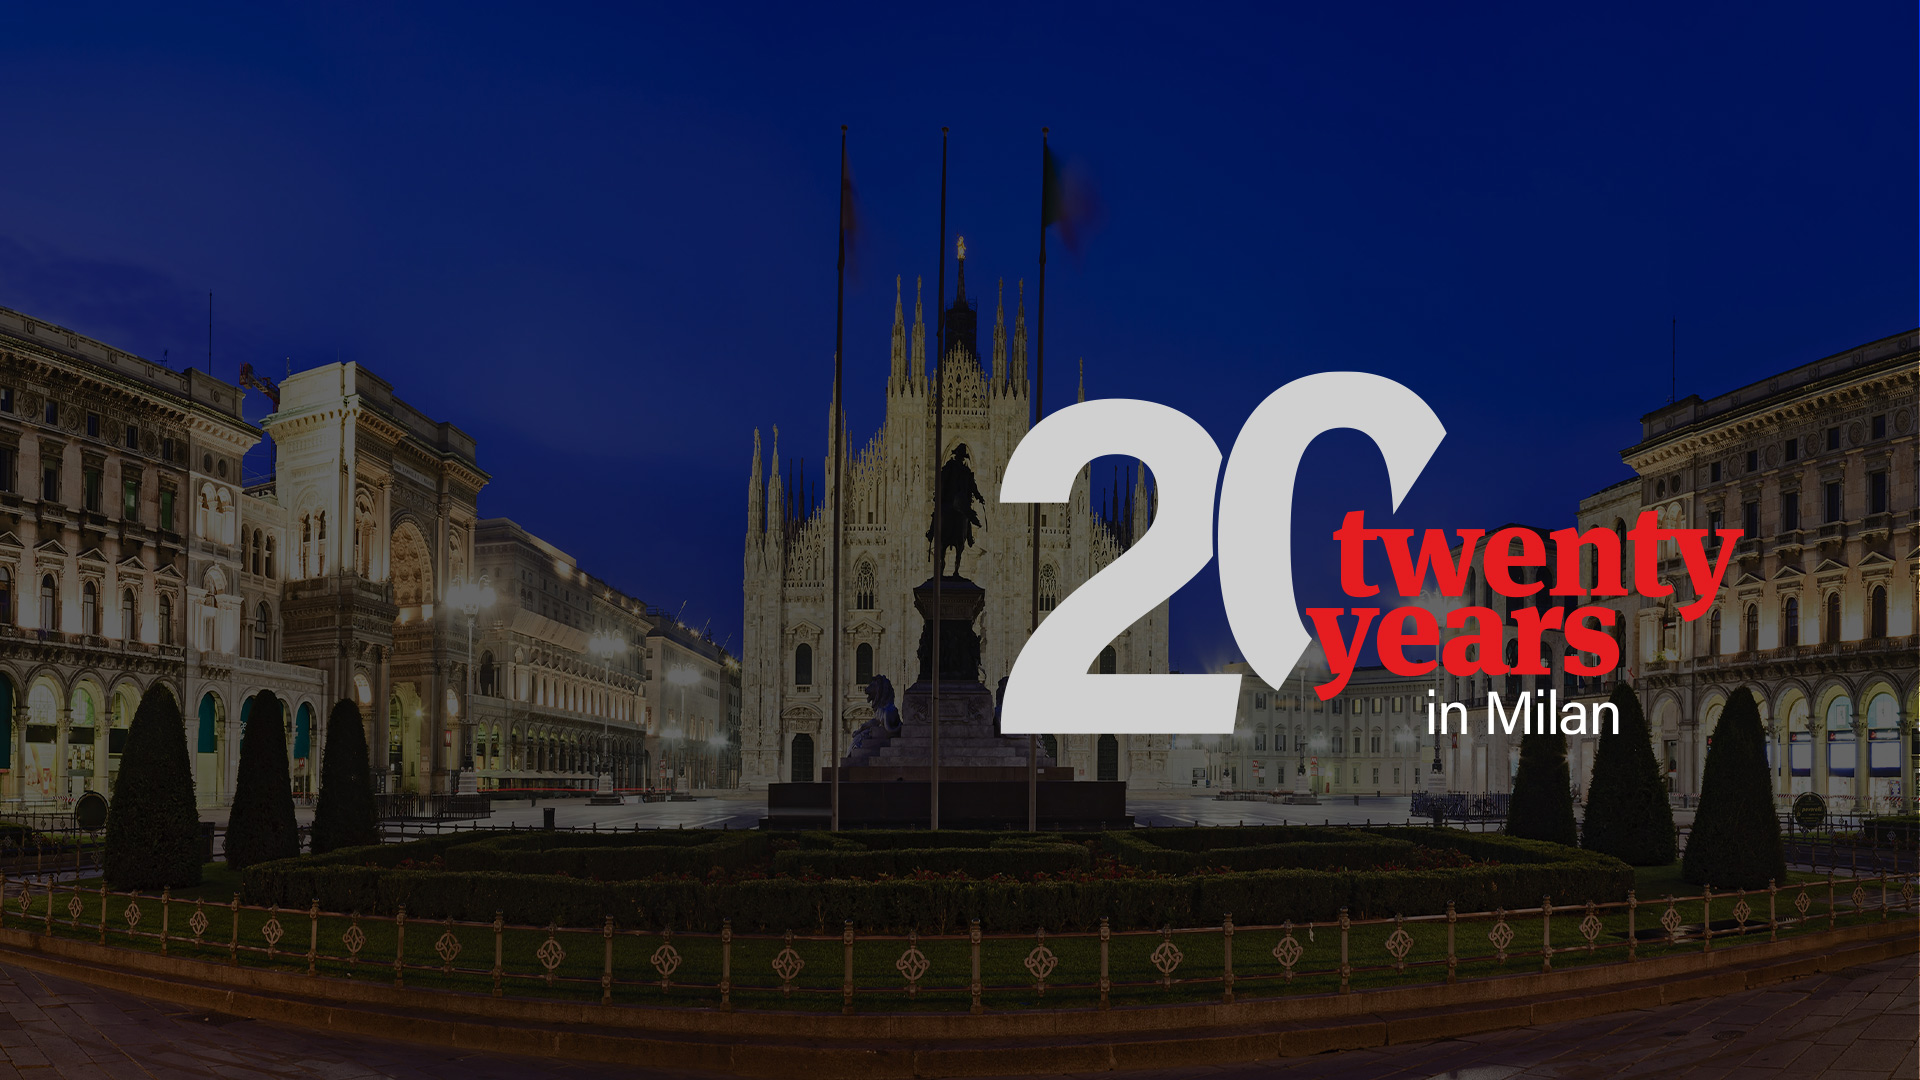 20 years in Milan